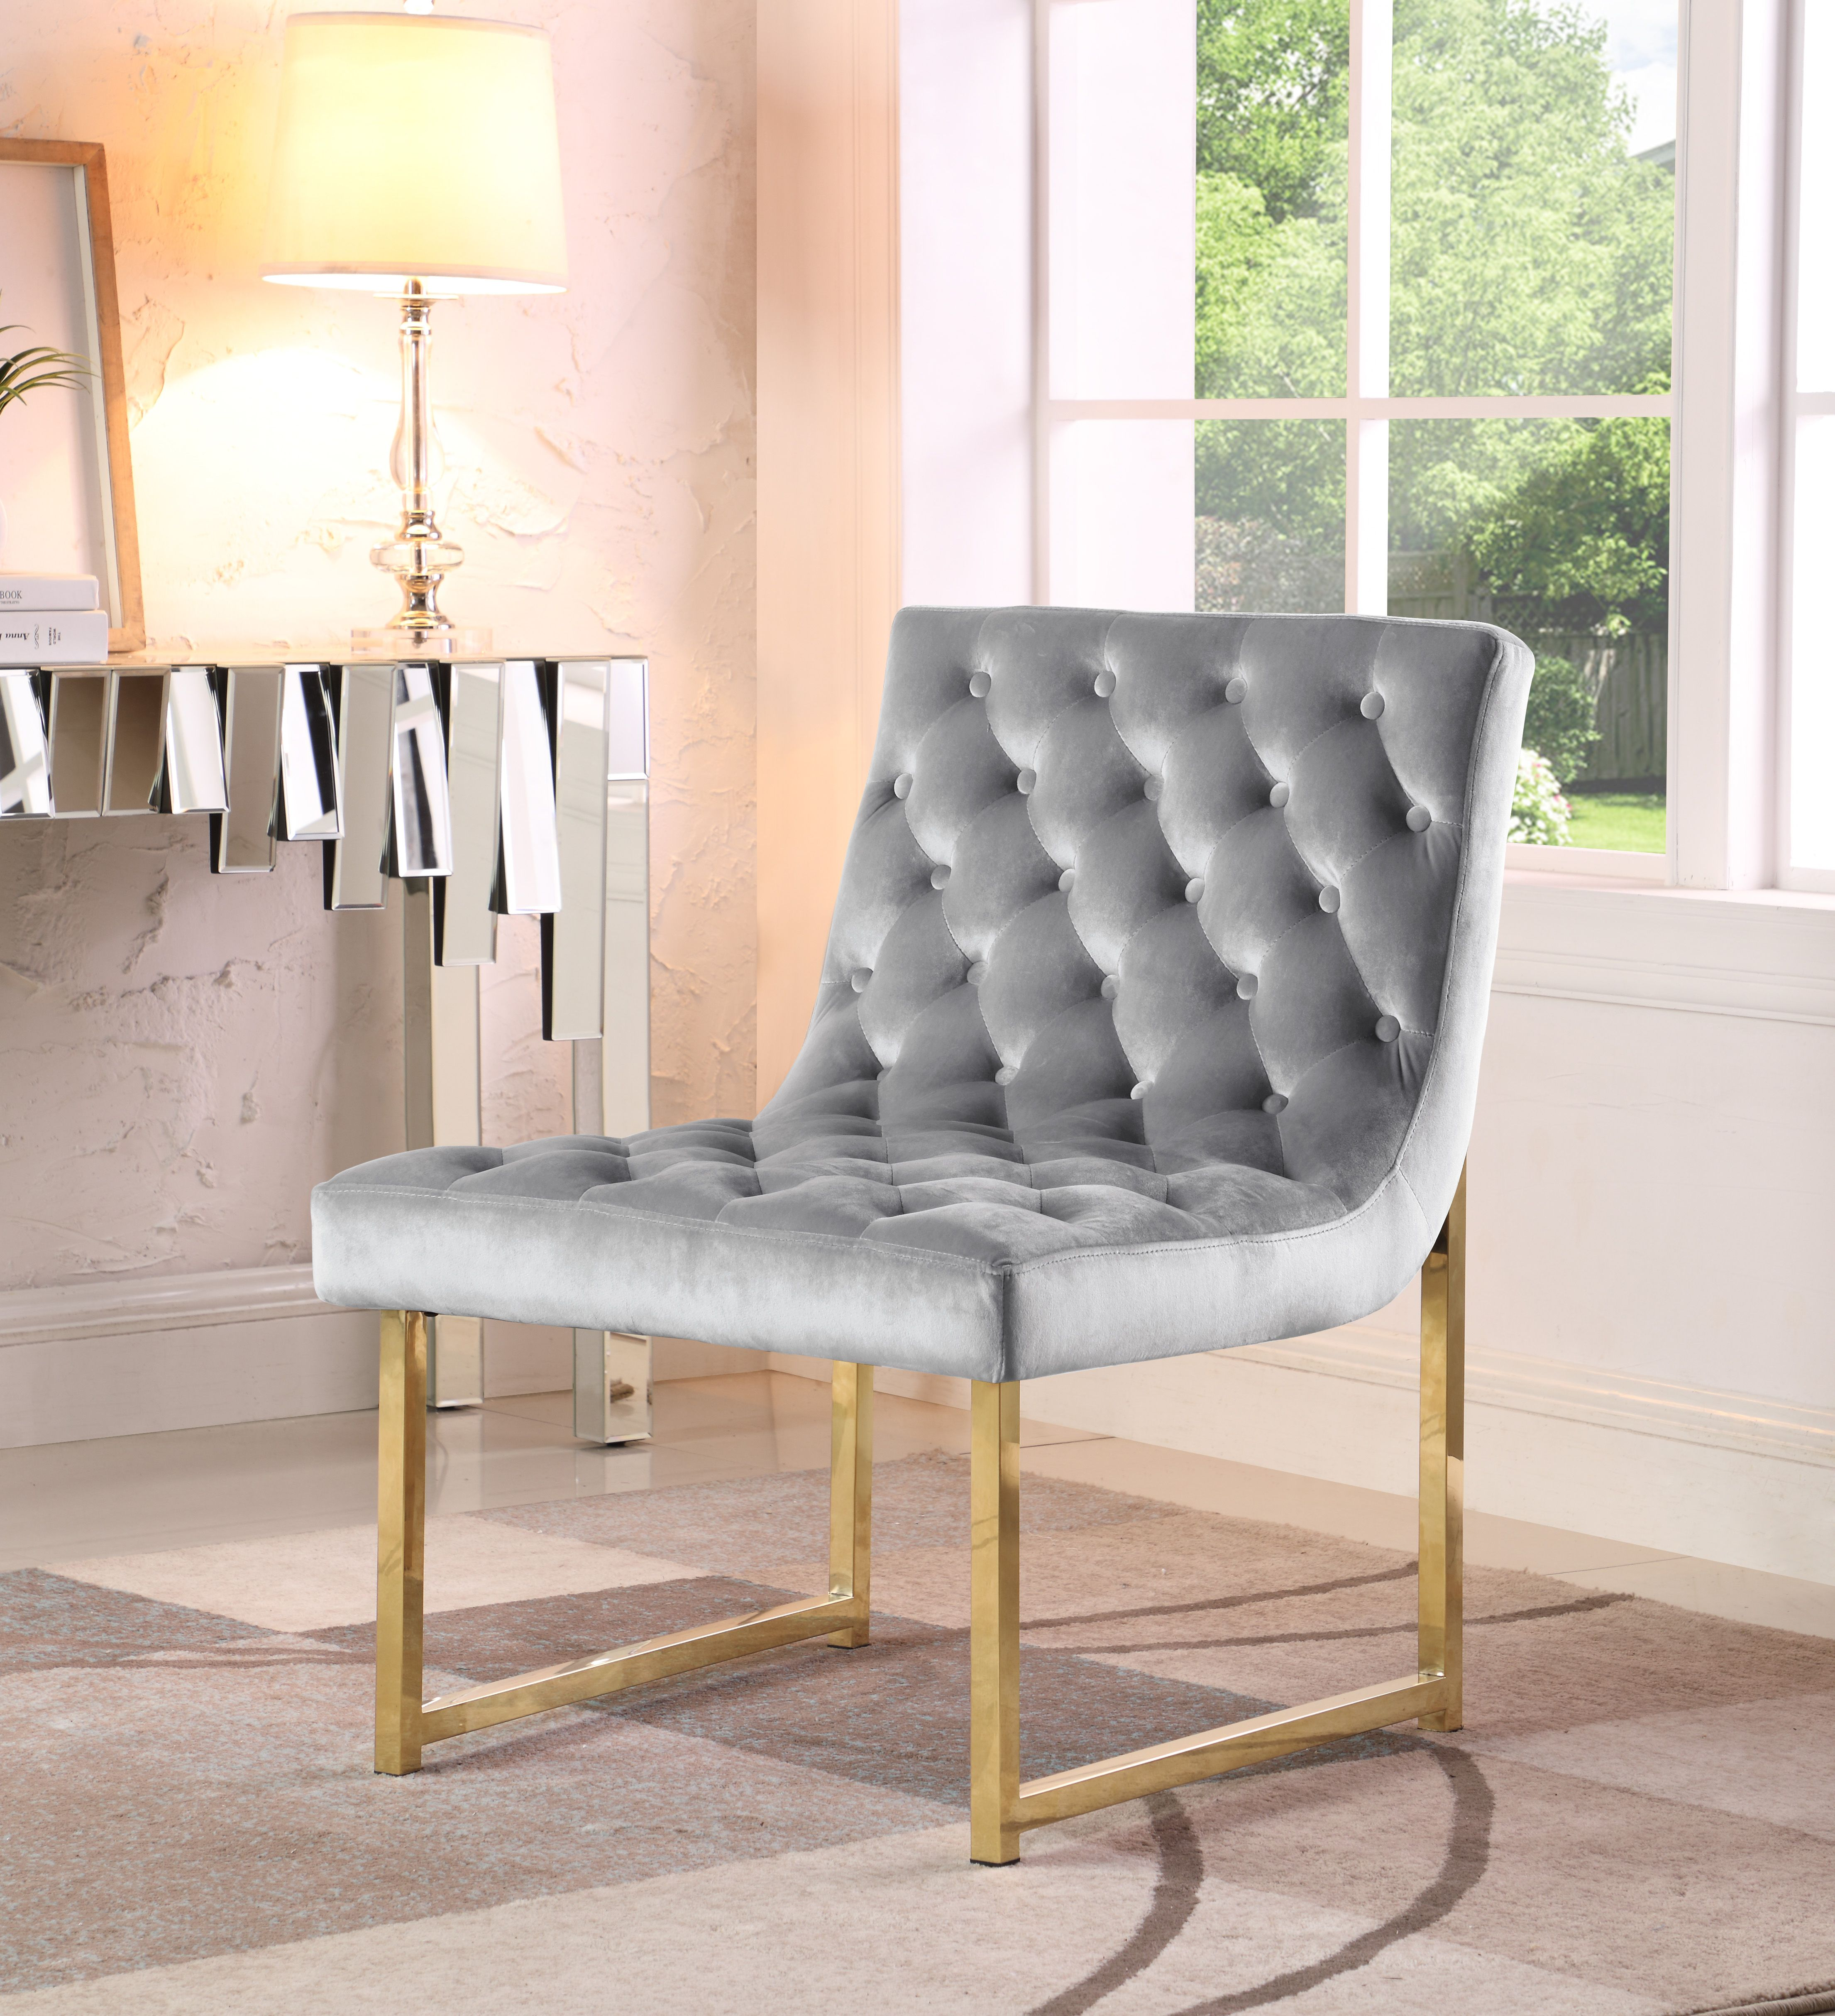 Home Luxury chairs, Living room accents, Accent chairs